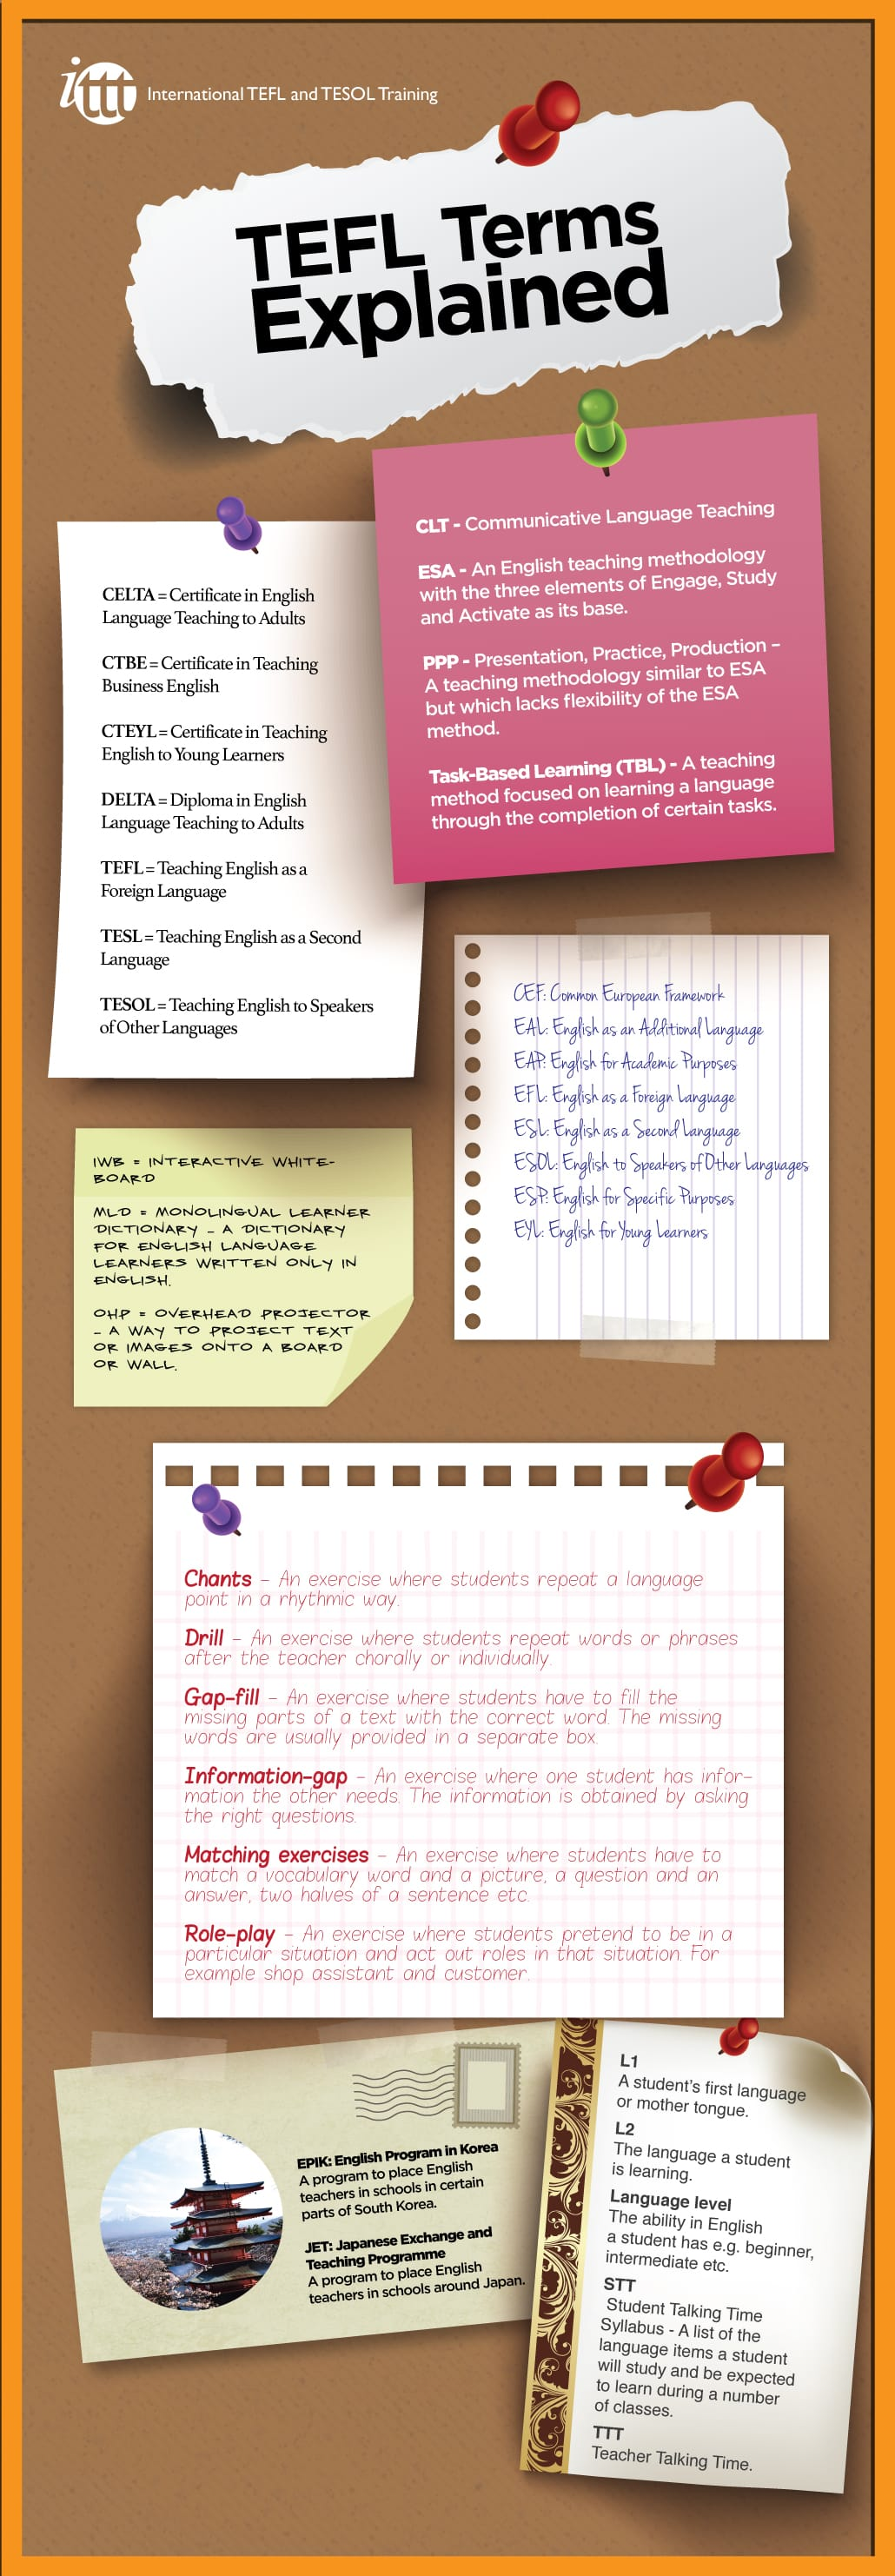 Infographic TEFL terms explained